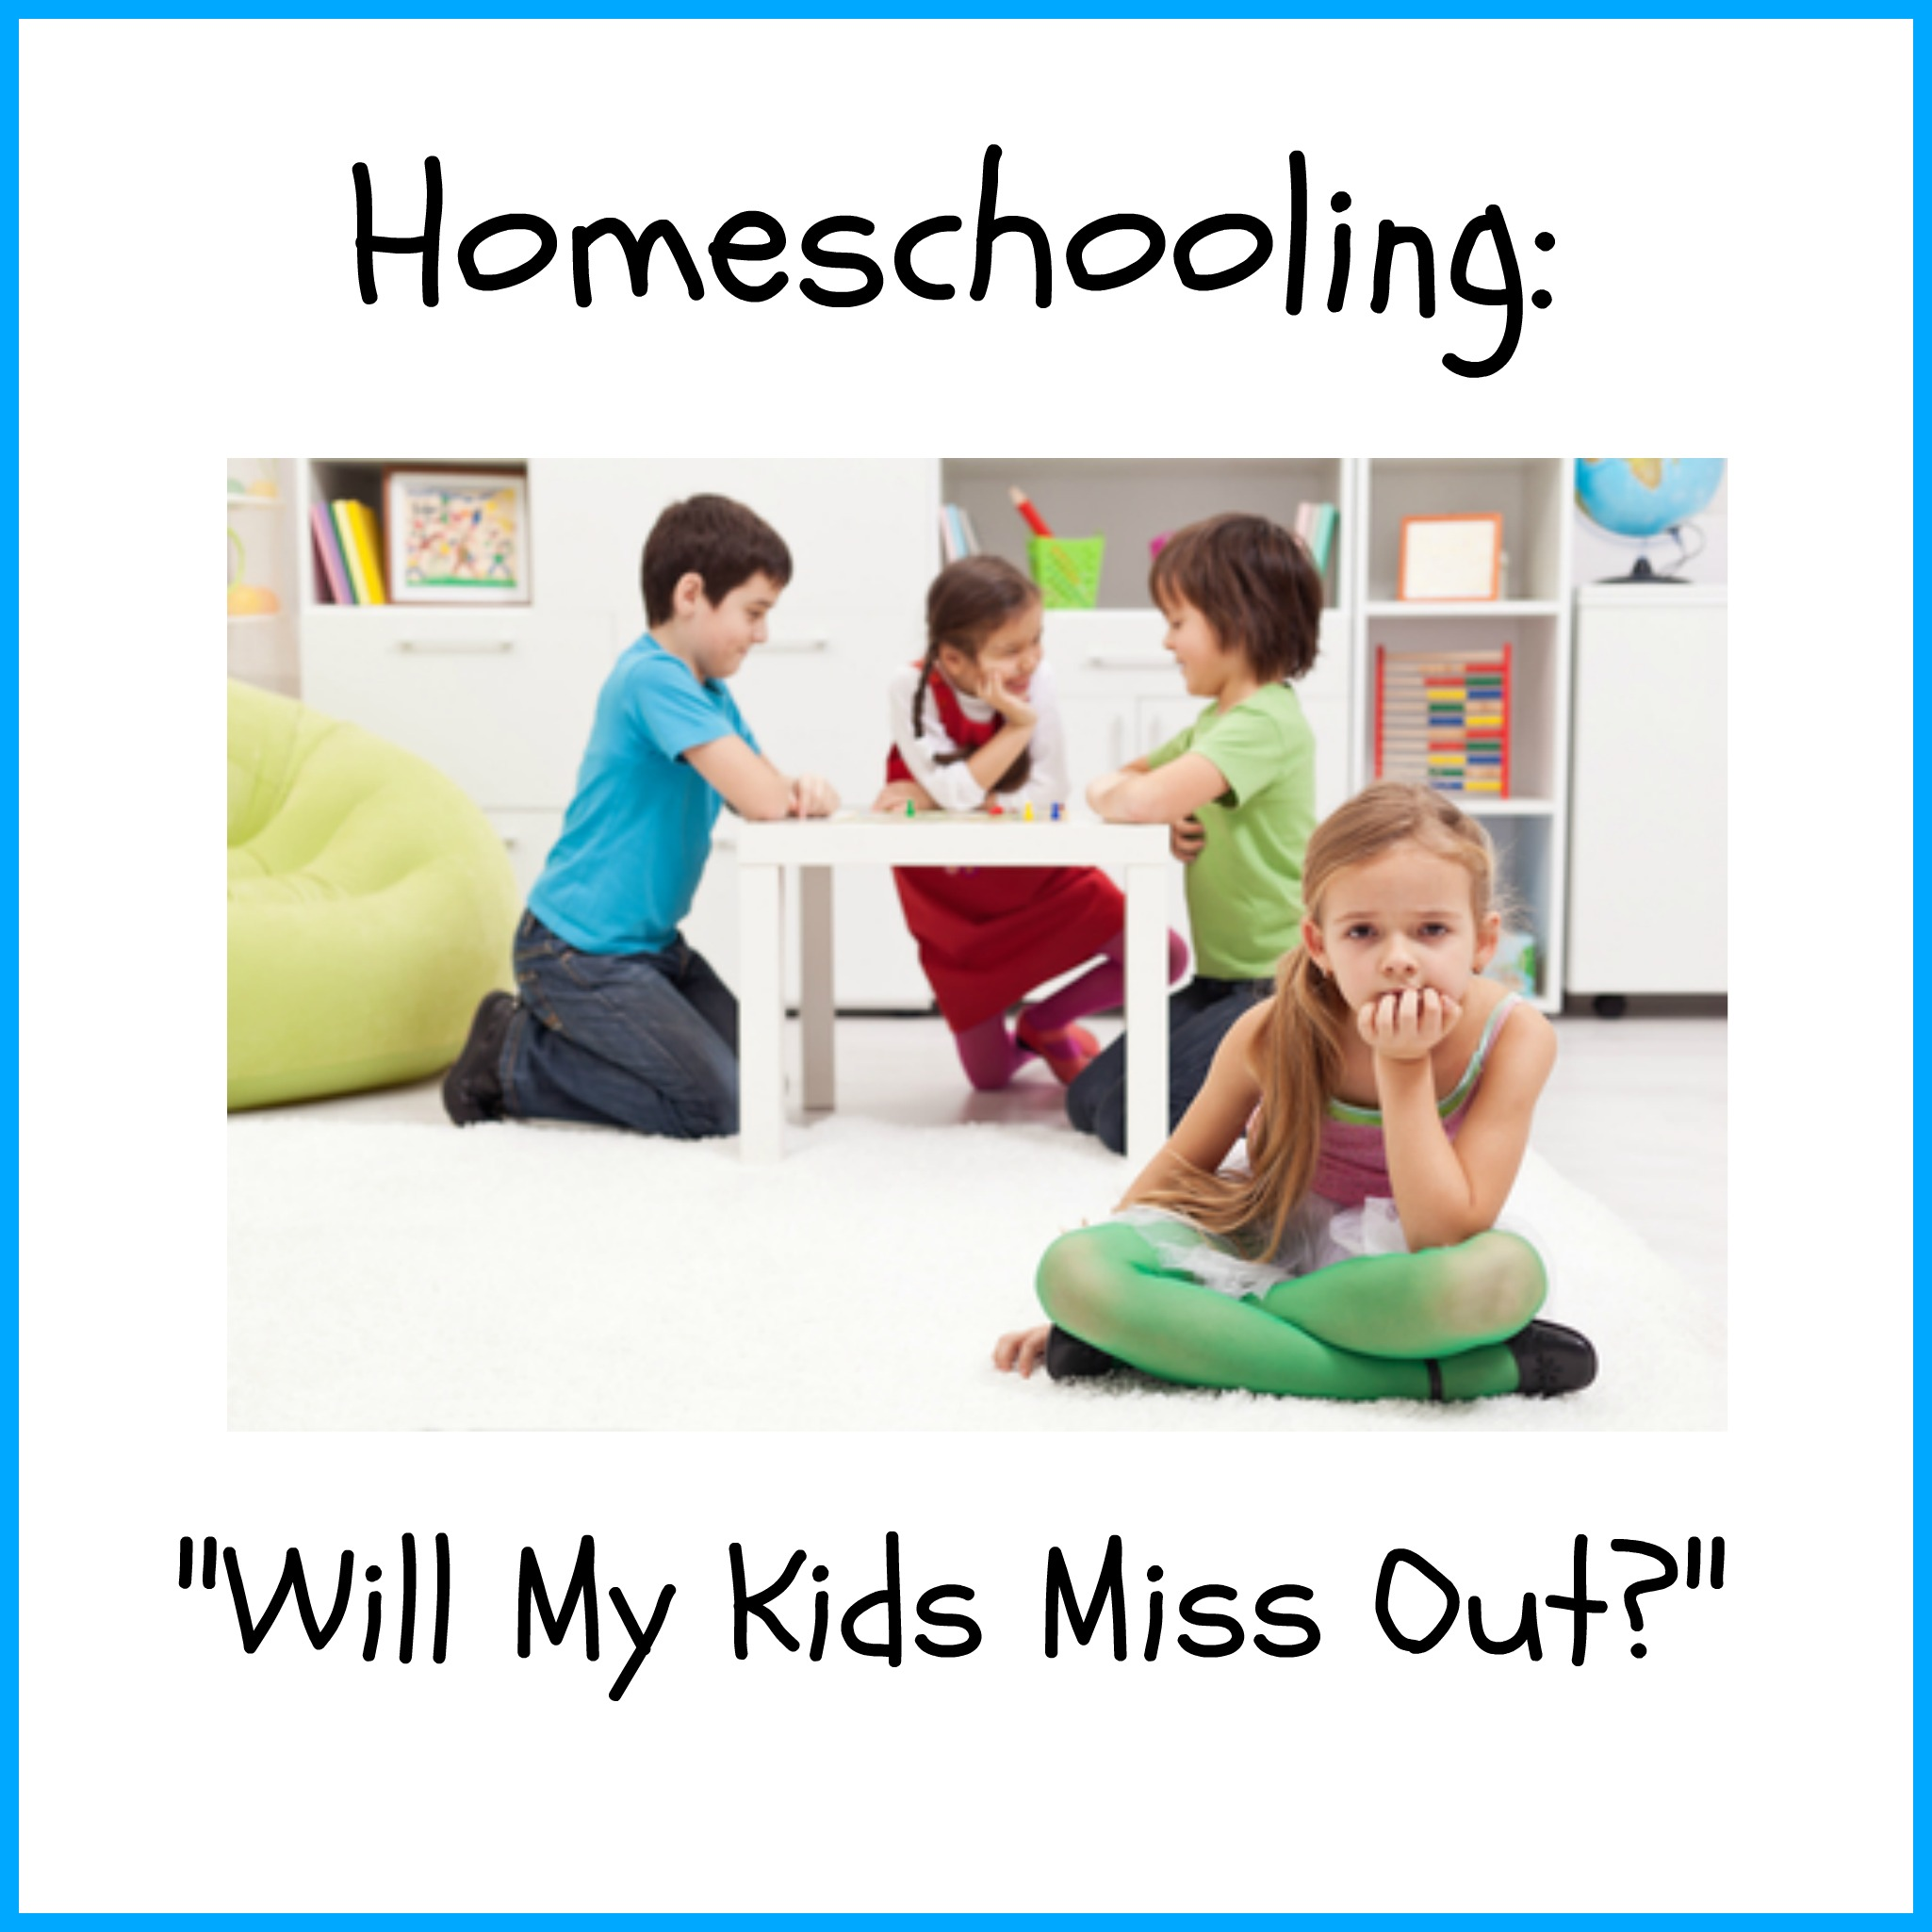 q a part i m interested in homeschooling but won t my kids q a part 1 i m interested in homeschooling but won t my kids miss out